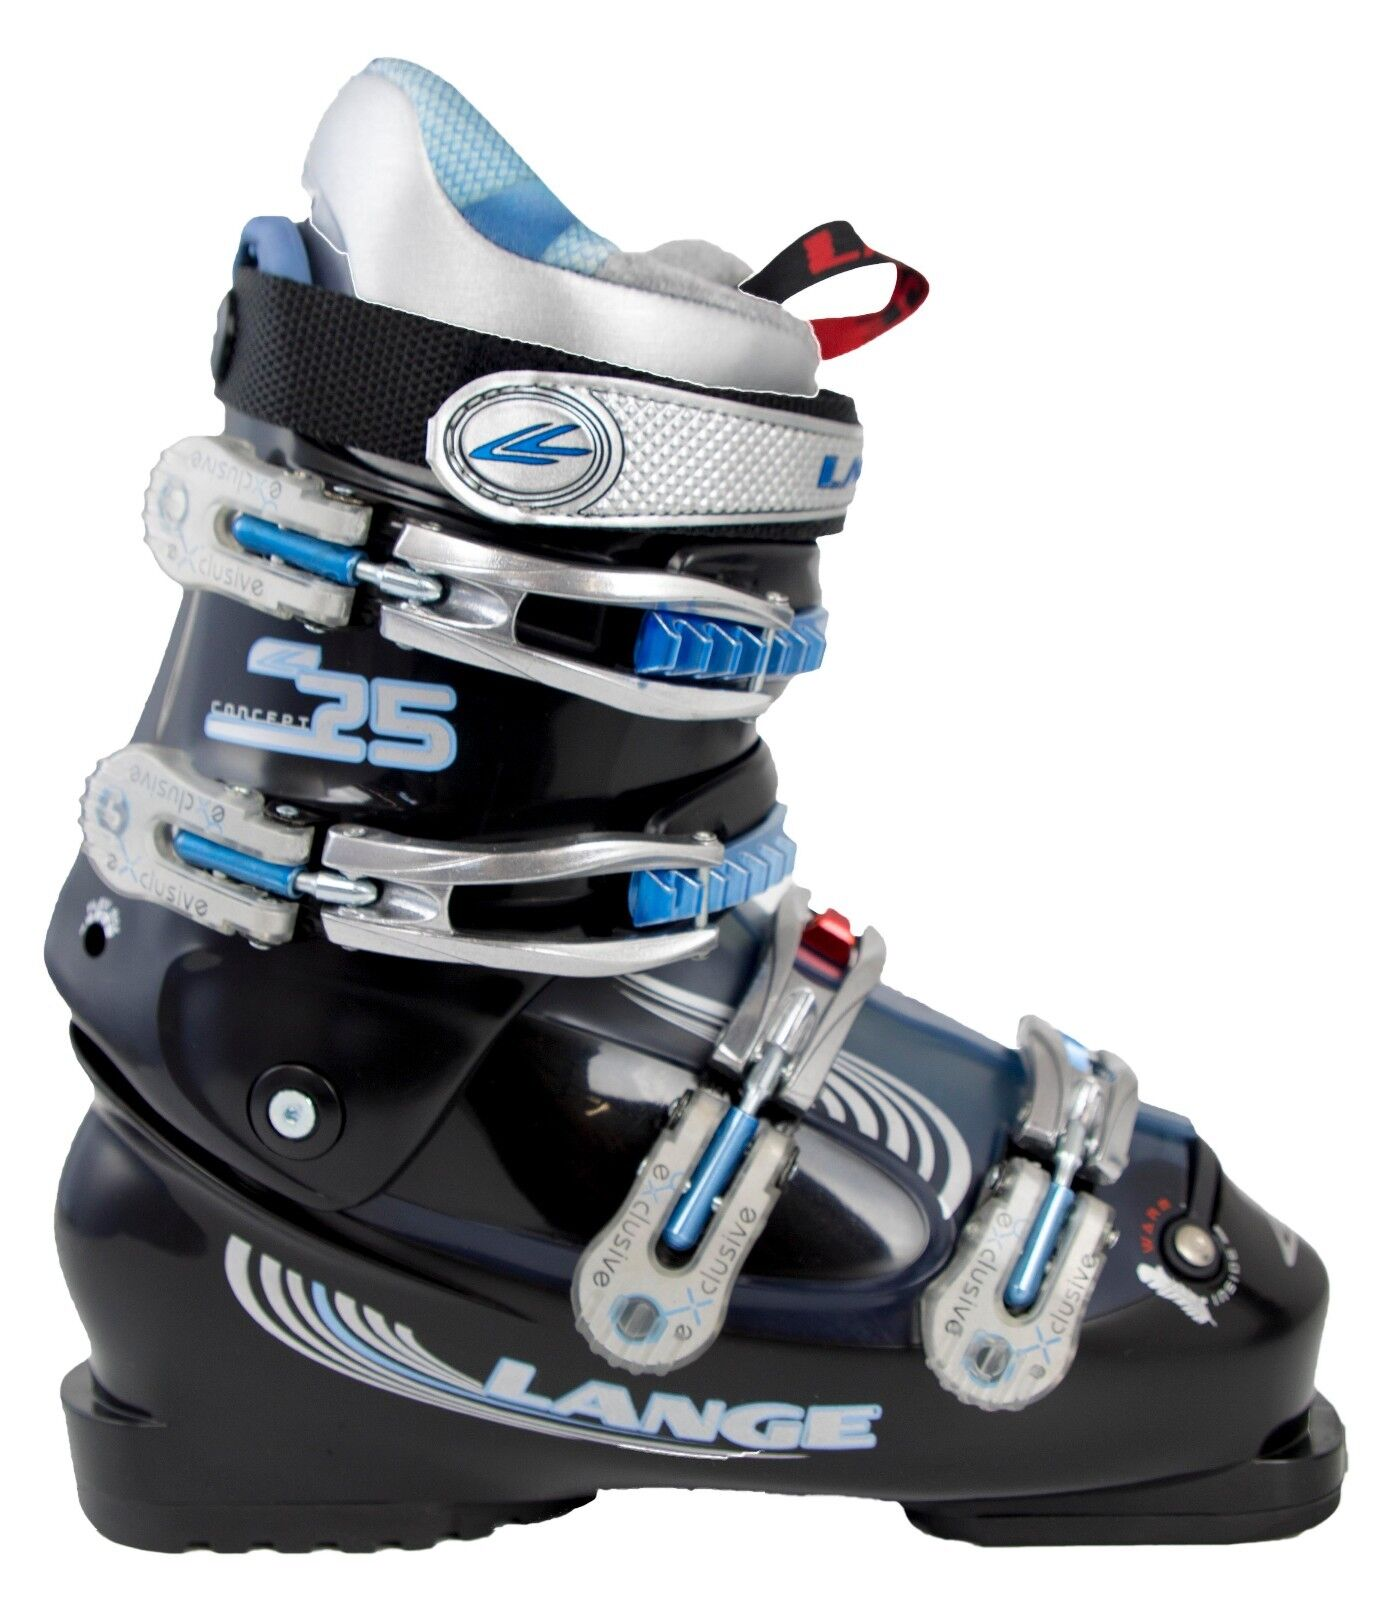 NEW  375 Womens Lange Concept 75 Ski Boots  Ladies Size USA 5 5.5 6 6.5 7 Girls  factory outlet online discount sale